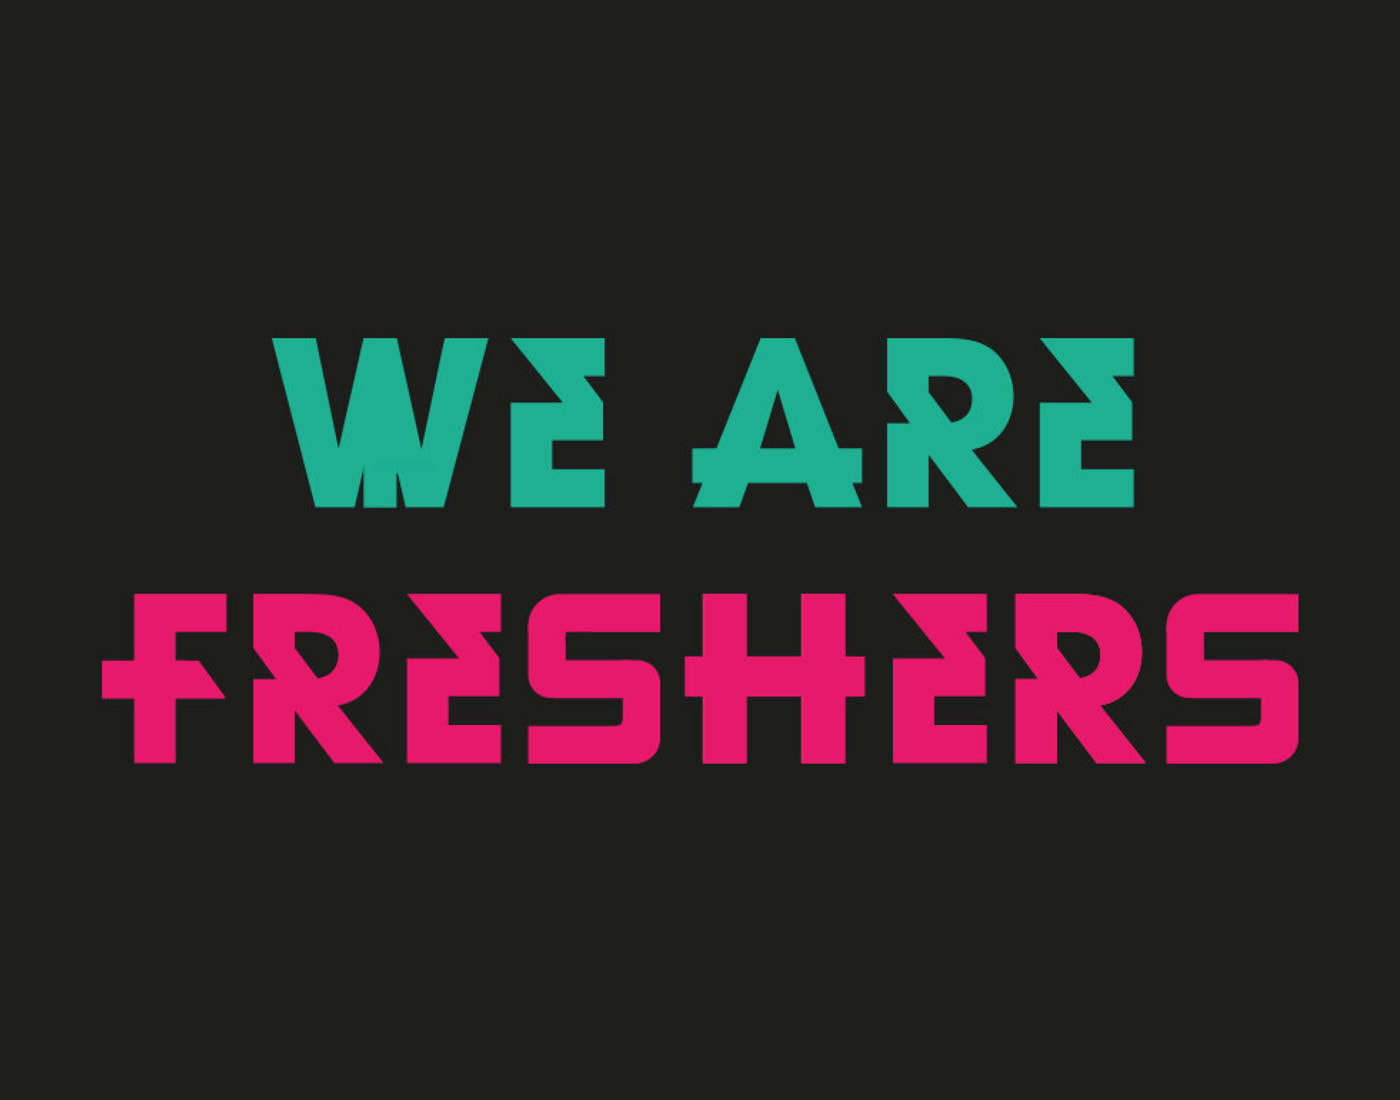 We Are Freshers